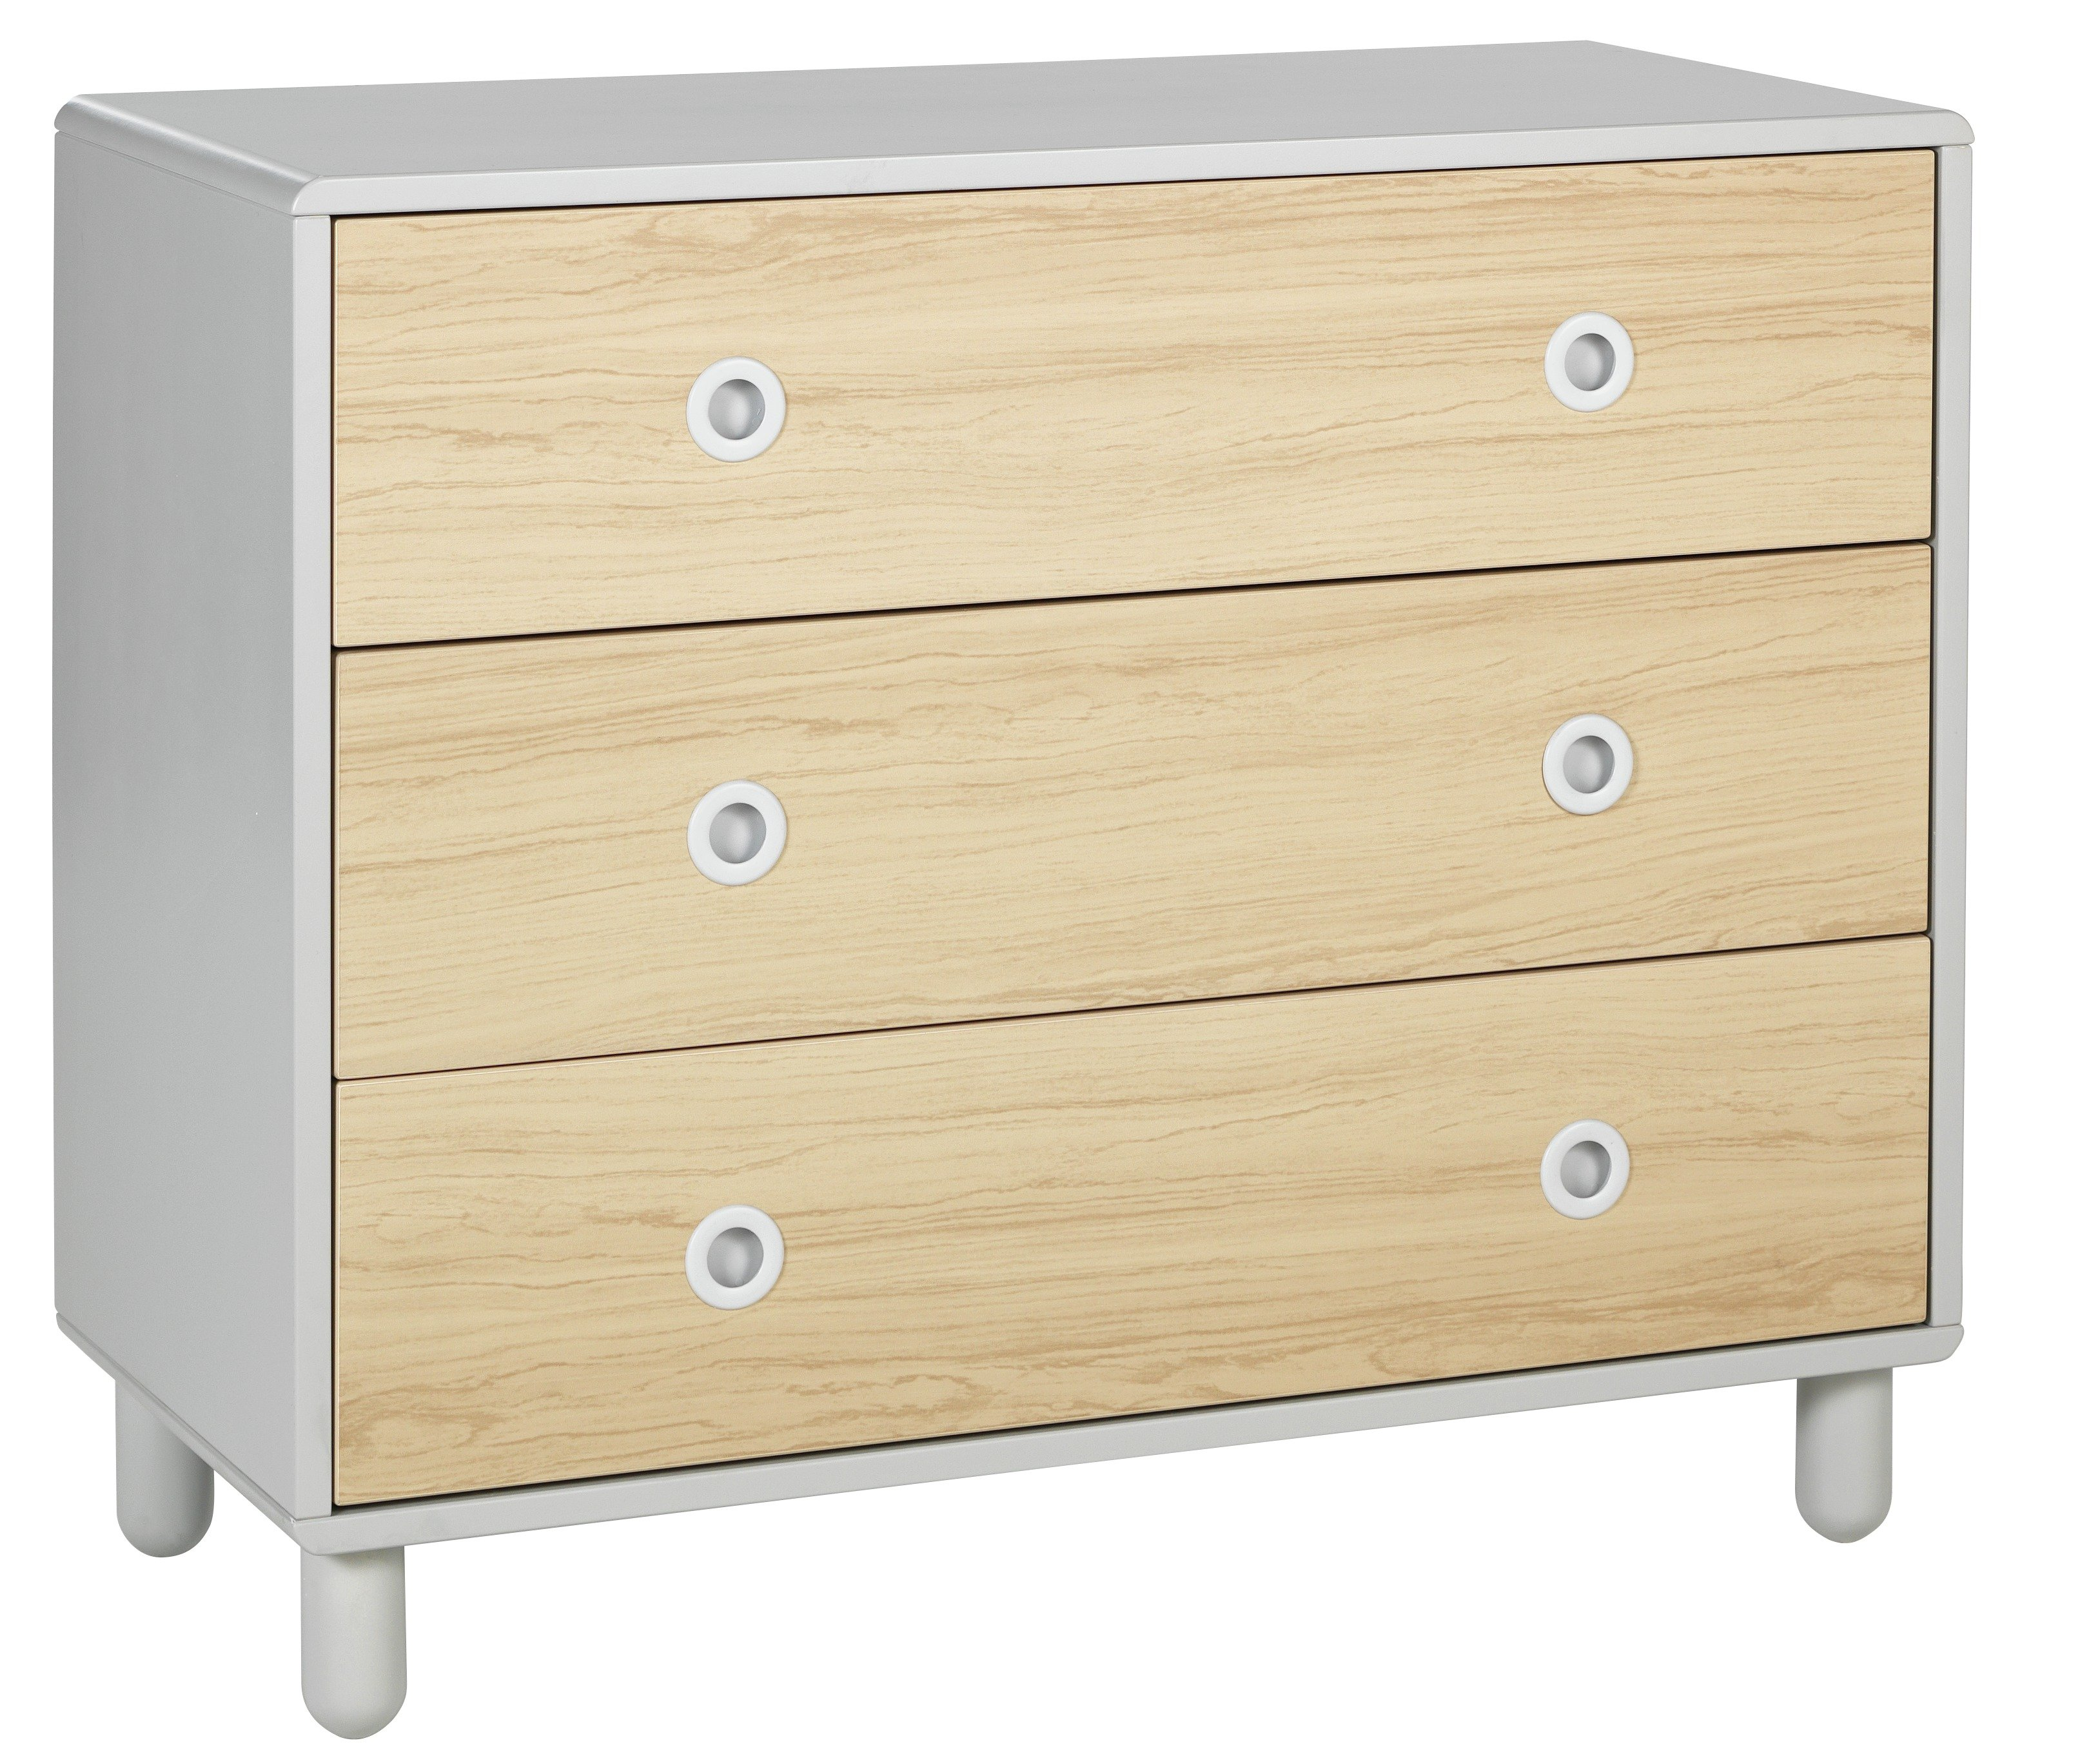 Collection Noah 3 Drawer Chest.